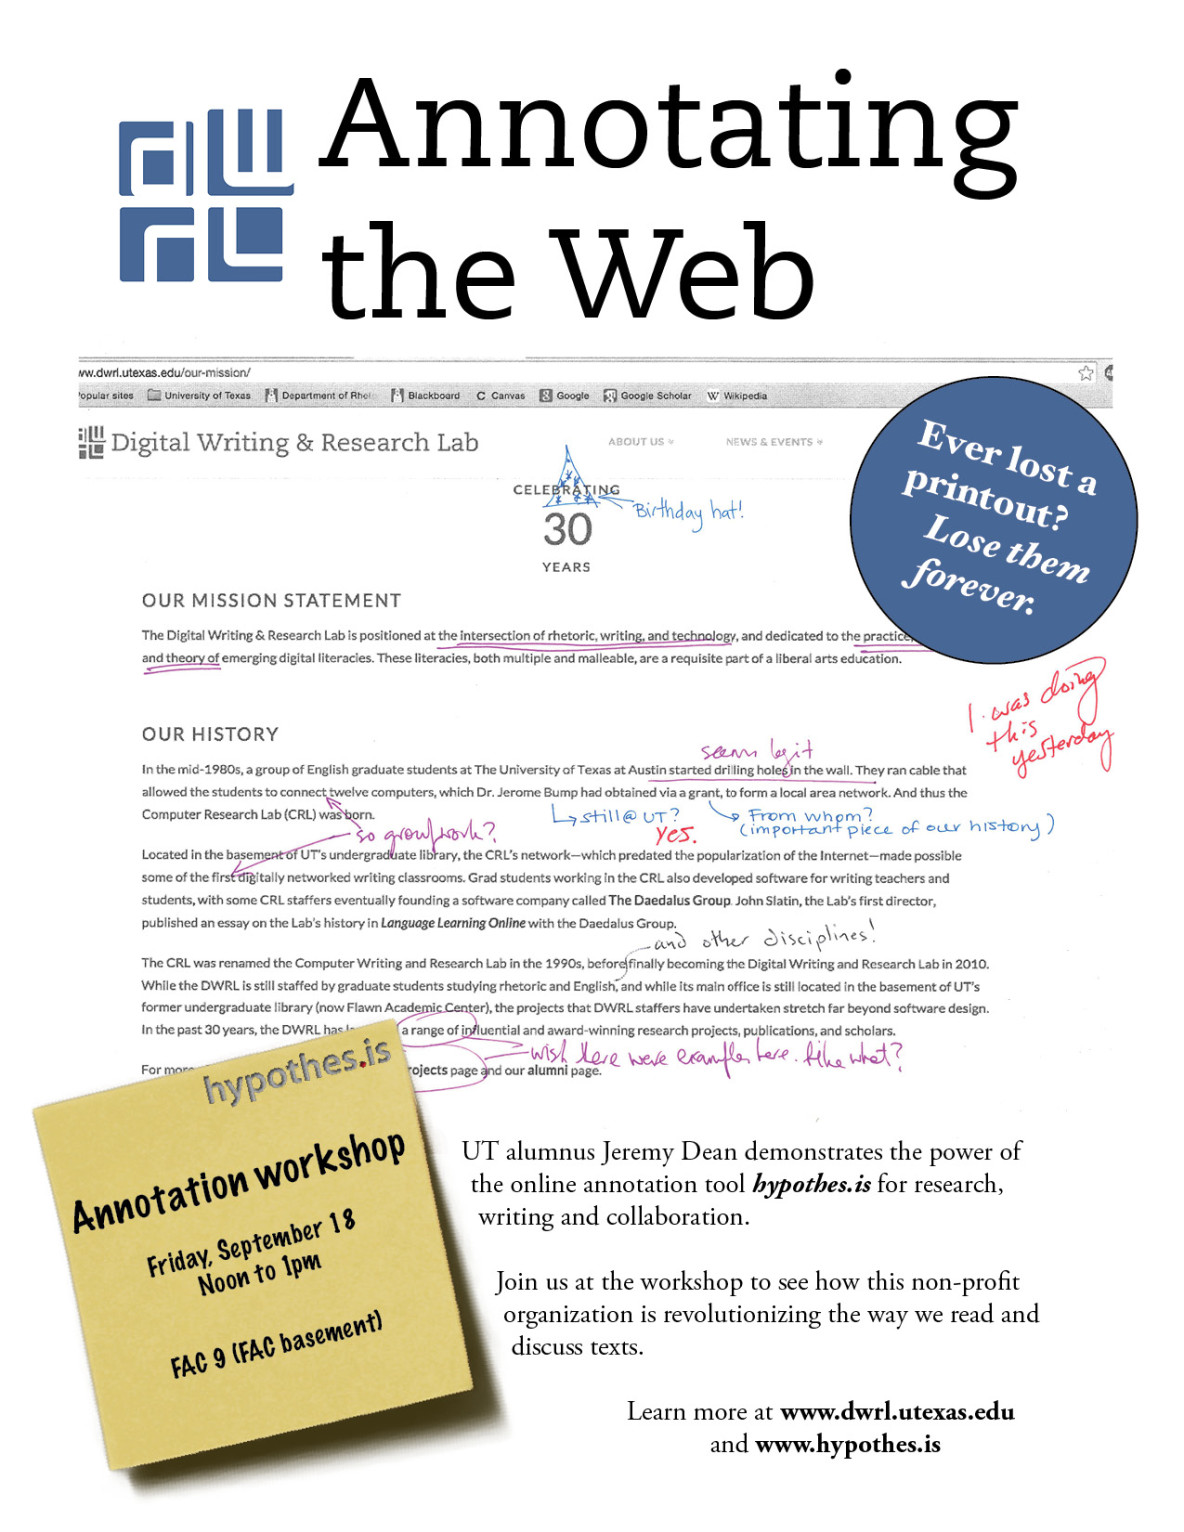 Flyer for the September 18, 2015 workshop on annotating the web using hypothes.is. UT alumnus Jeremy Dean demonstrates the power of the online annotation tool hypothes.is for research, writing and collaboration. Join us at the workshop to see how this non-profit organization is revolutionizing the way we read and discuss texts. Learn more at www.dwrl.utexas.edu and www.hypothes.is